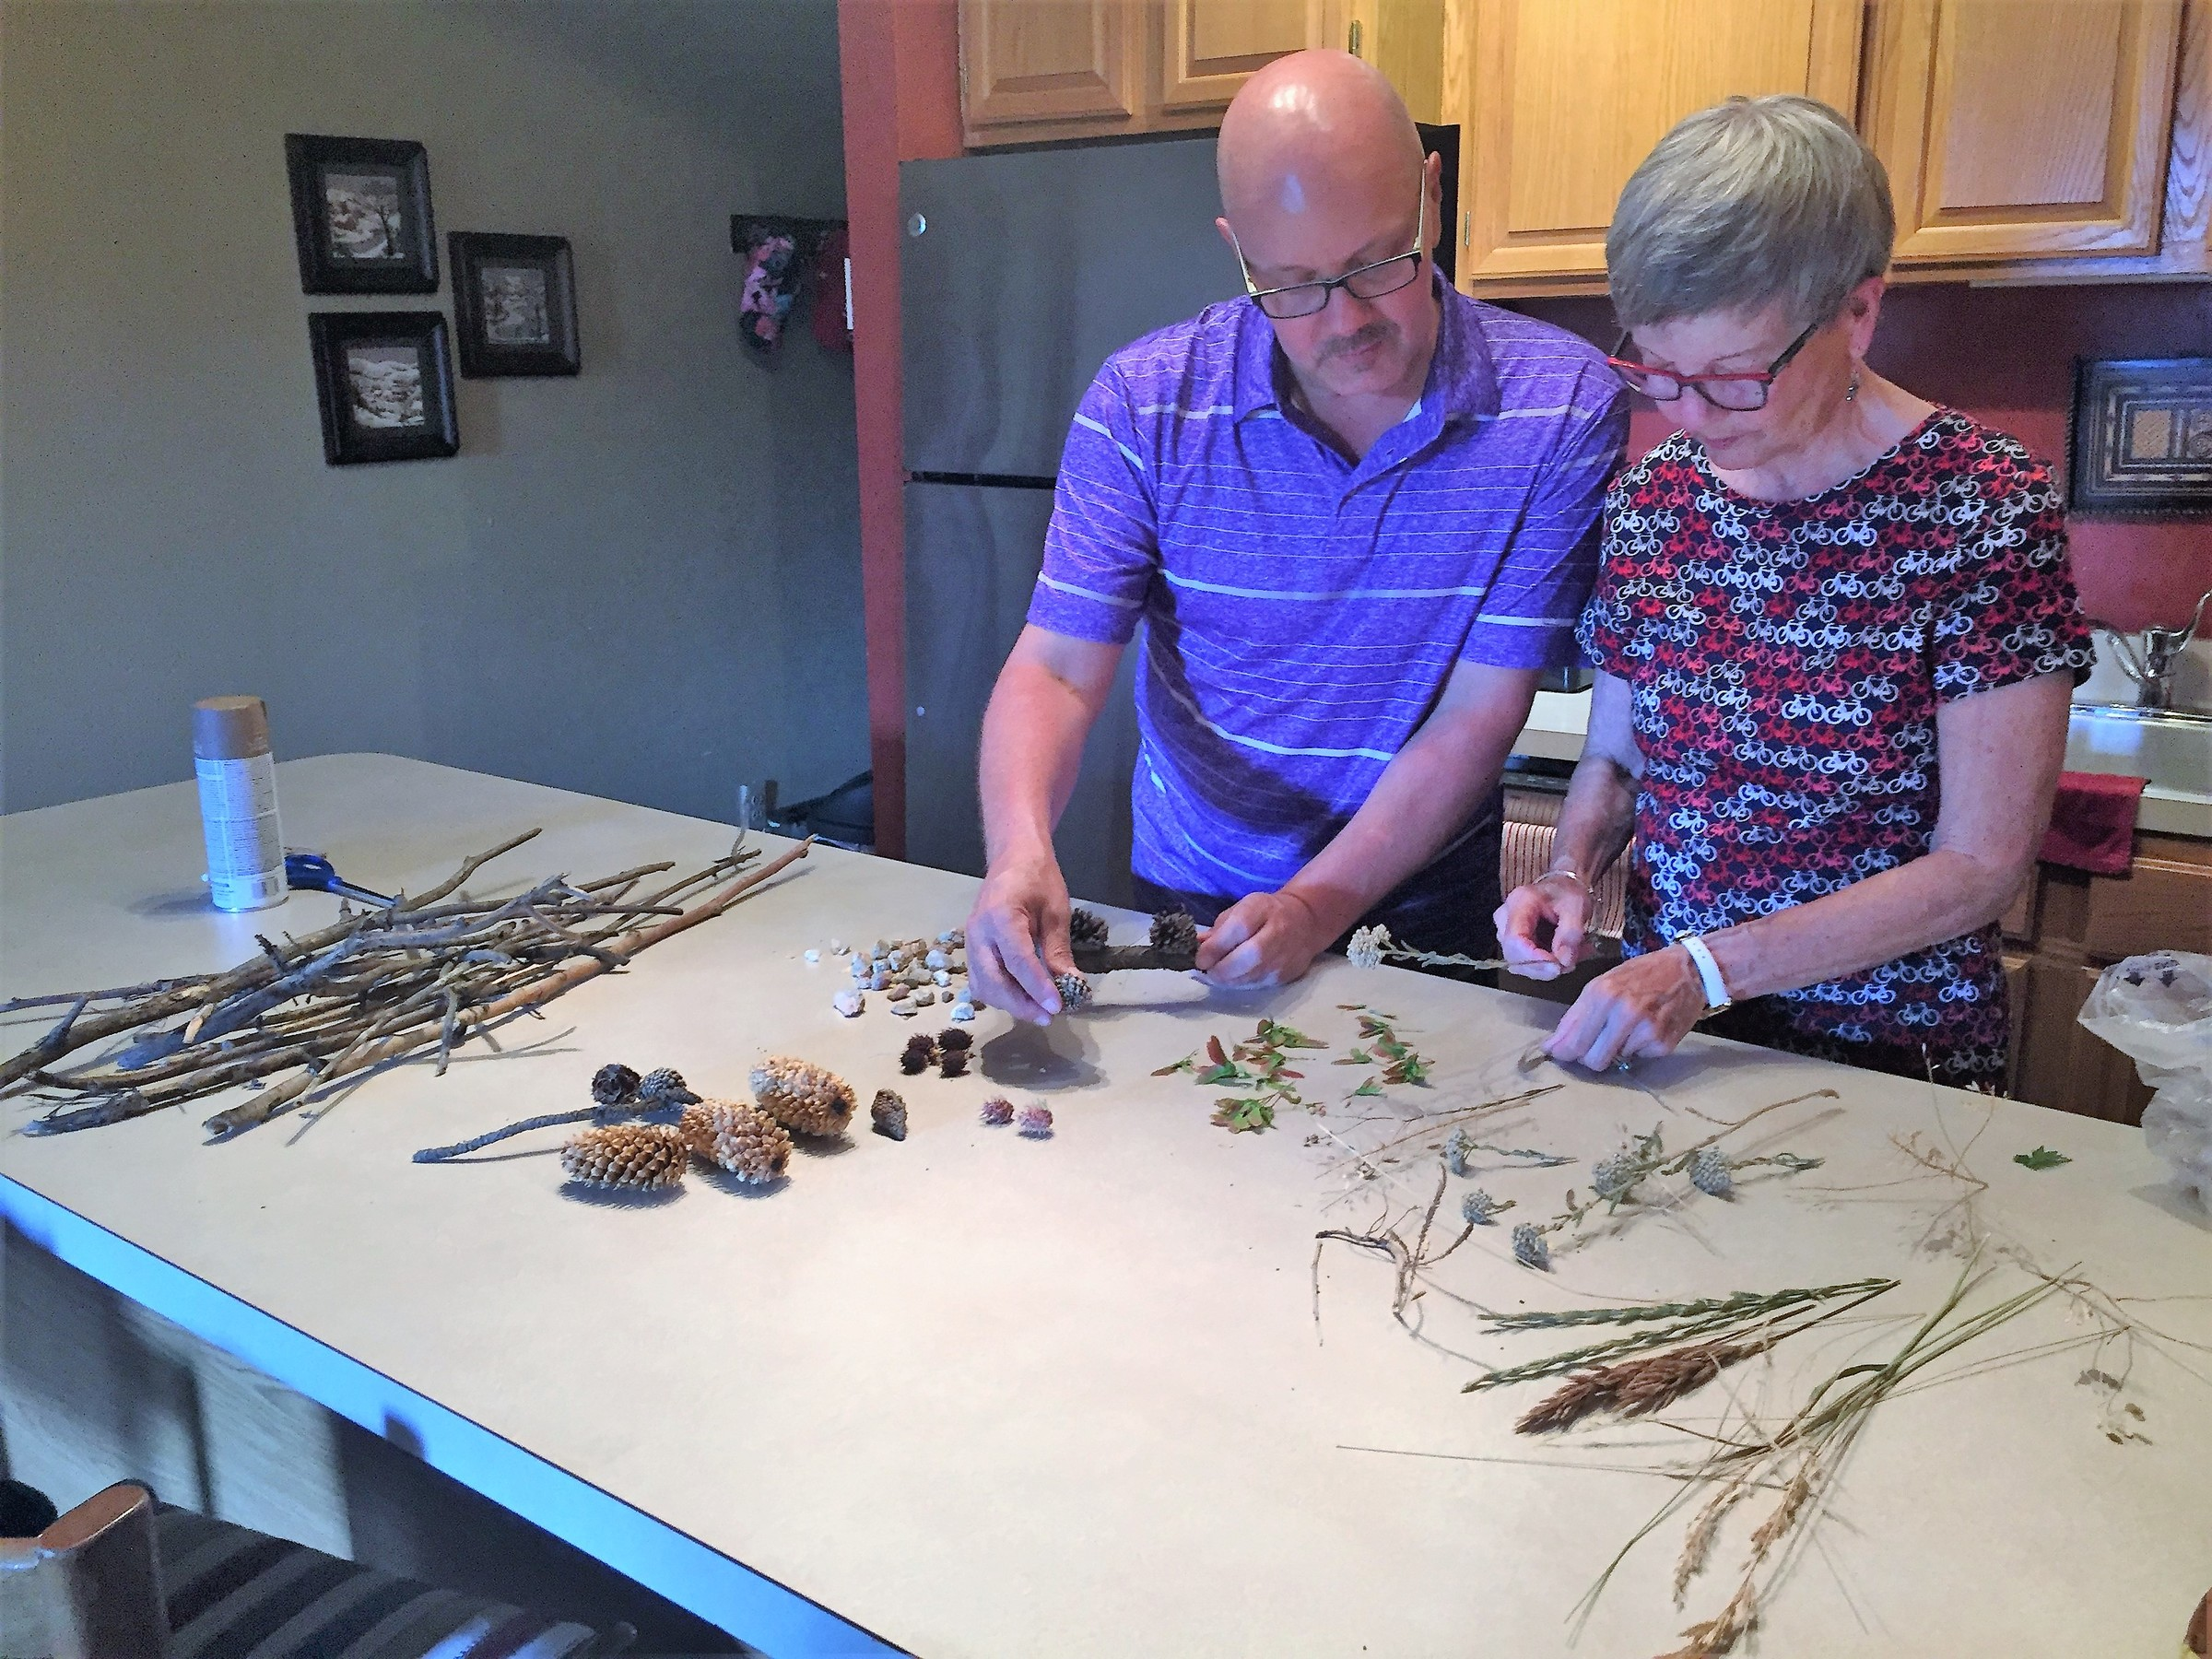 Tim and his Mother sort through natural items used to decorate their frames